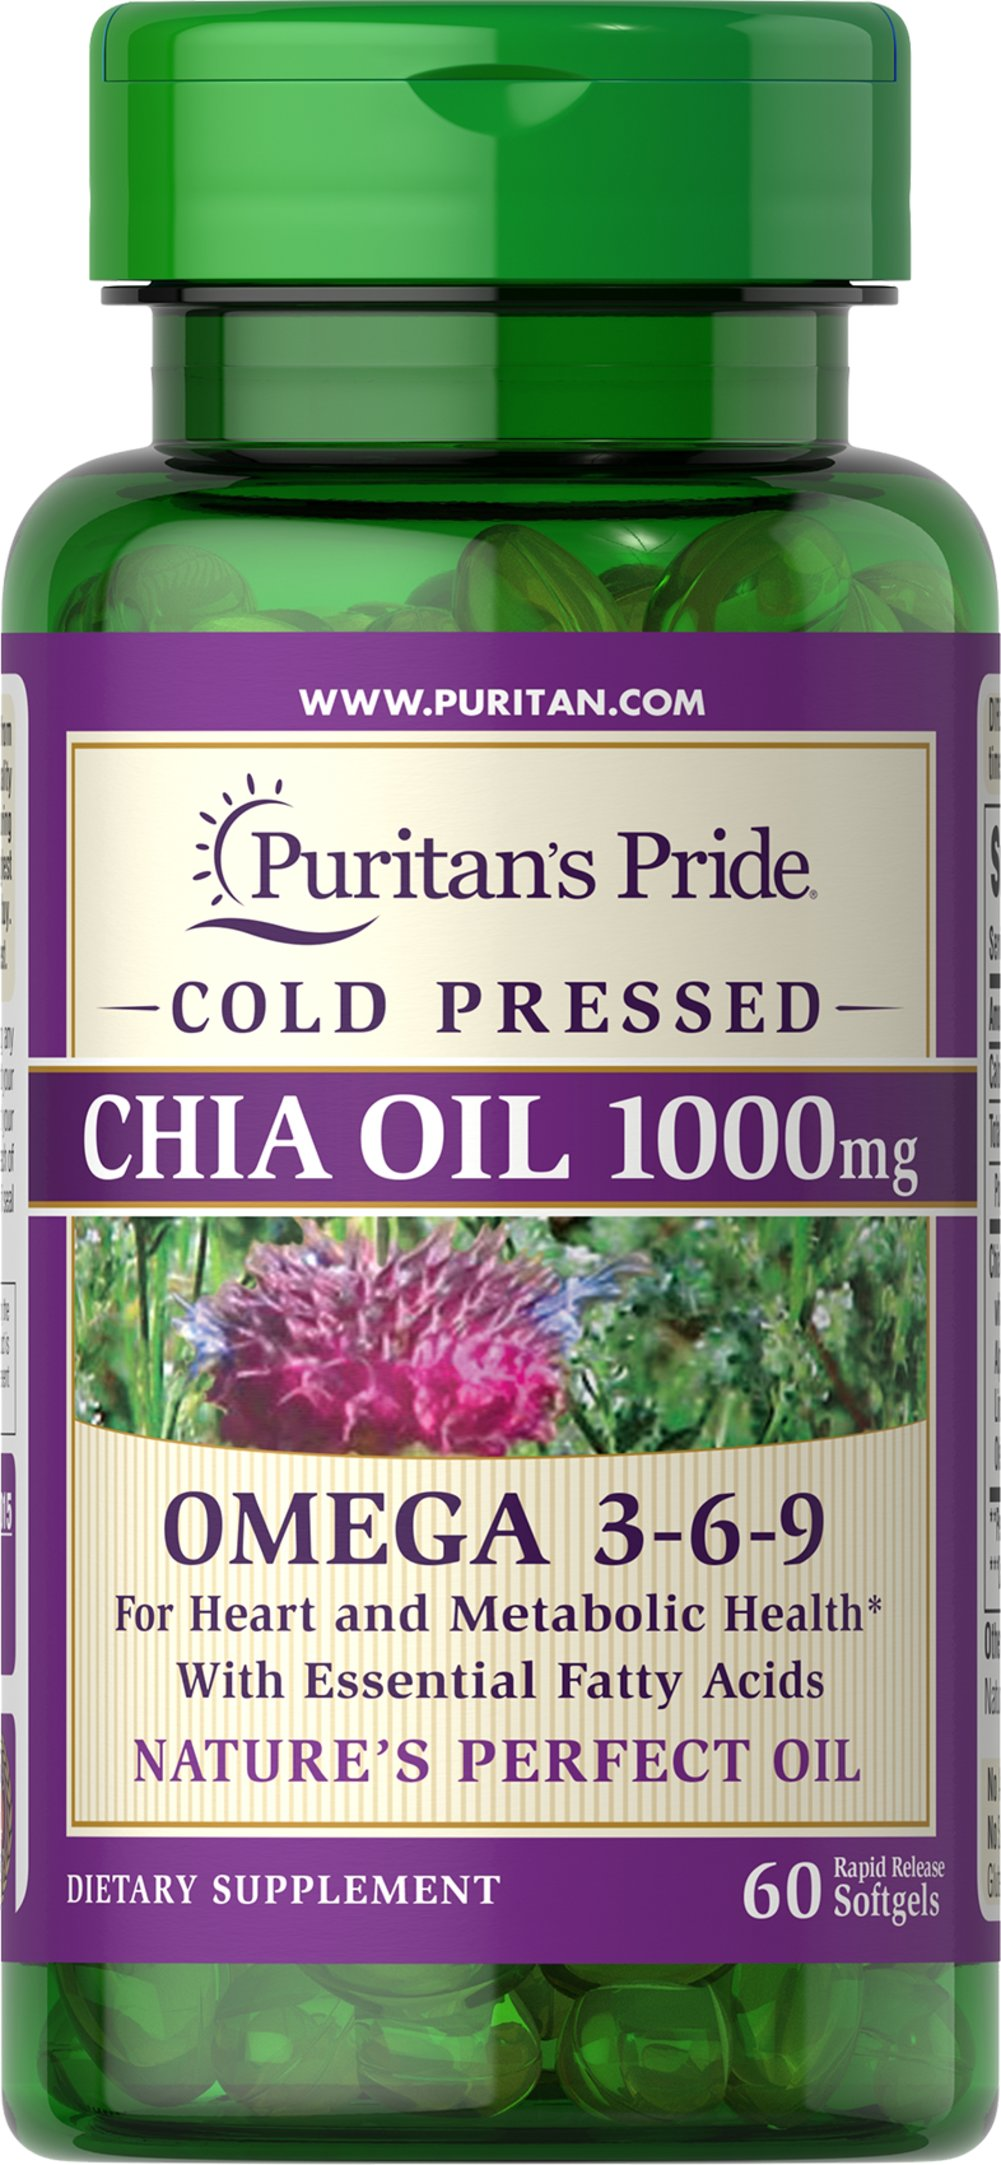 Omega 3-6-9 Chia Seed Oil 1000 mg <p>Chia Oil is perfect for anyone looking for a non-fish source of essential omega fatty acids for health and wellness.**</p> <p> Lab analysis indicates that Chia Oil may even have a higher concentration of essential fats as compared to flaxseed oil, which is generally considered to be the best plant source of Omega-3 fatty acids. **</p> 60 Softgels 1000 mg $19.99